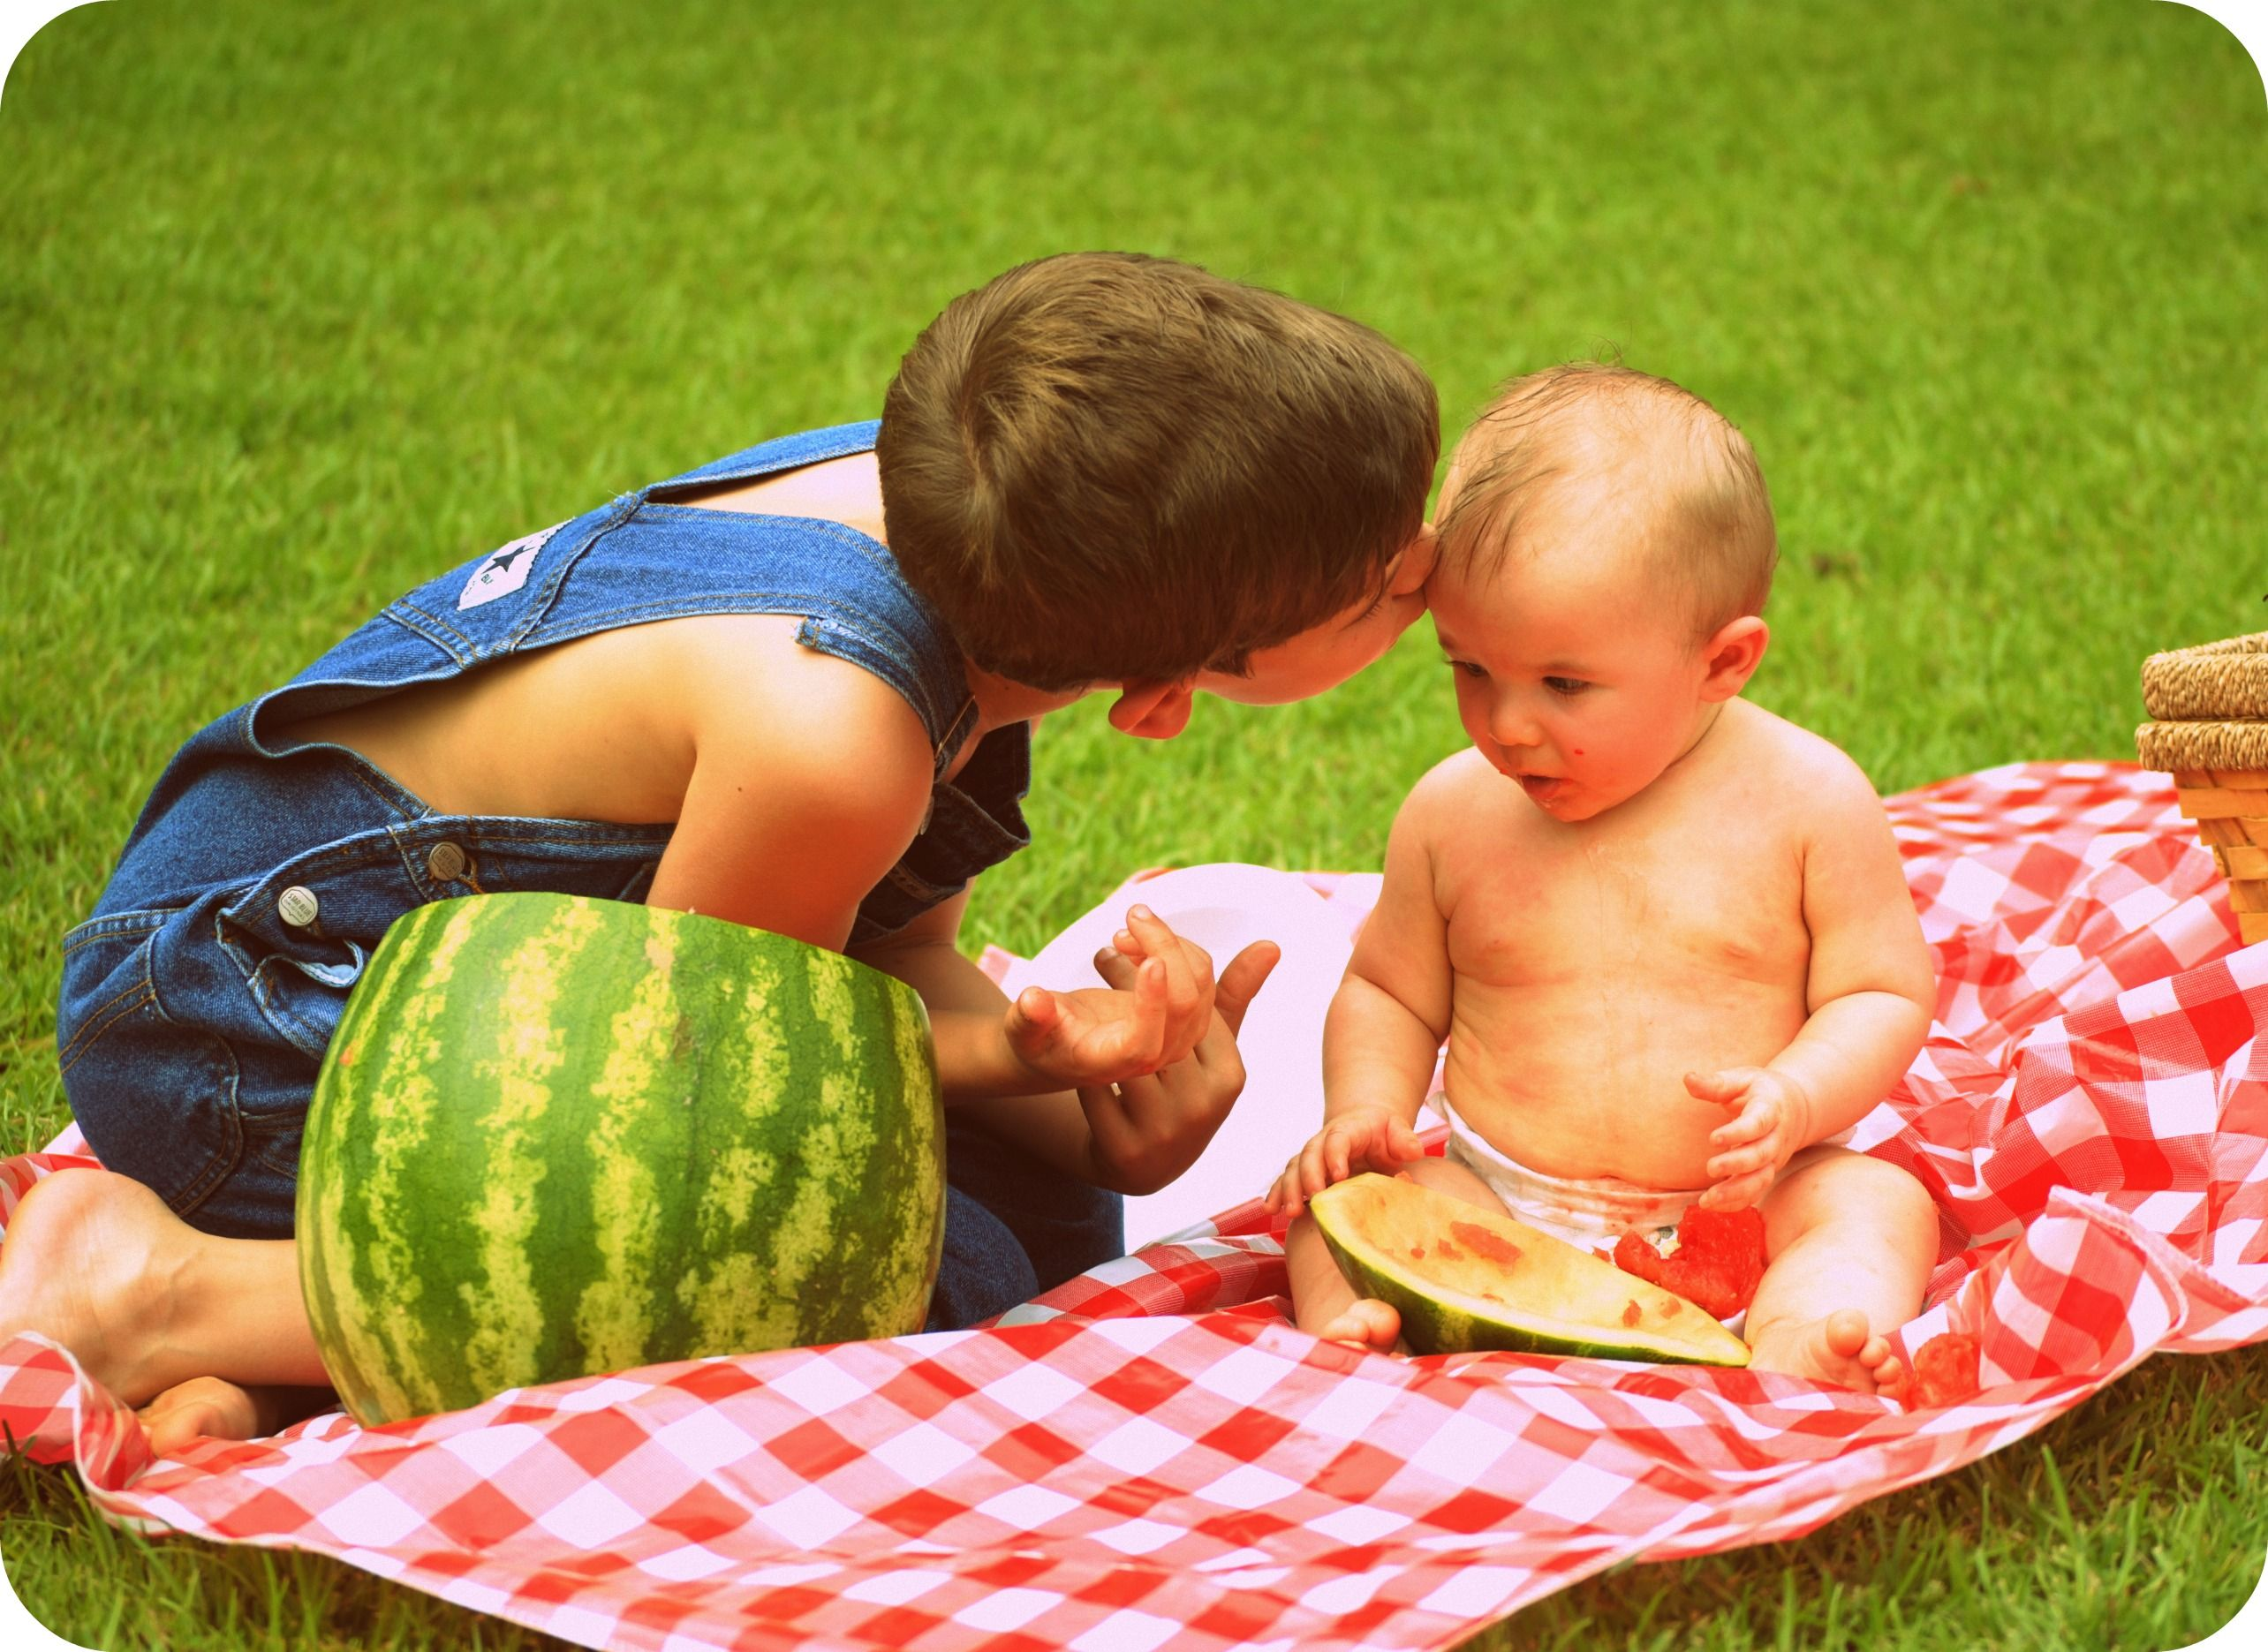 Brothers. Spring. Watermelon.